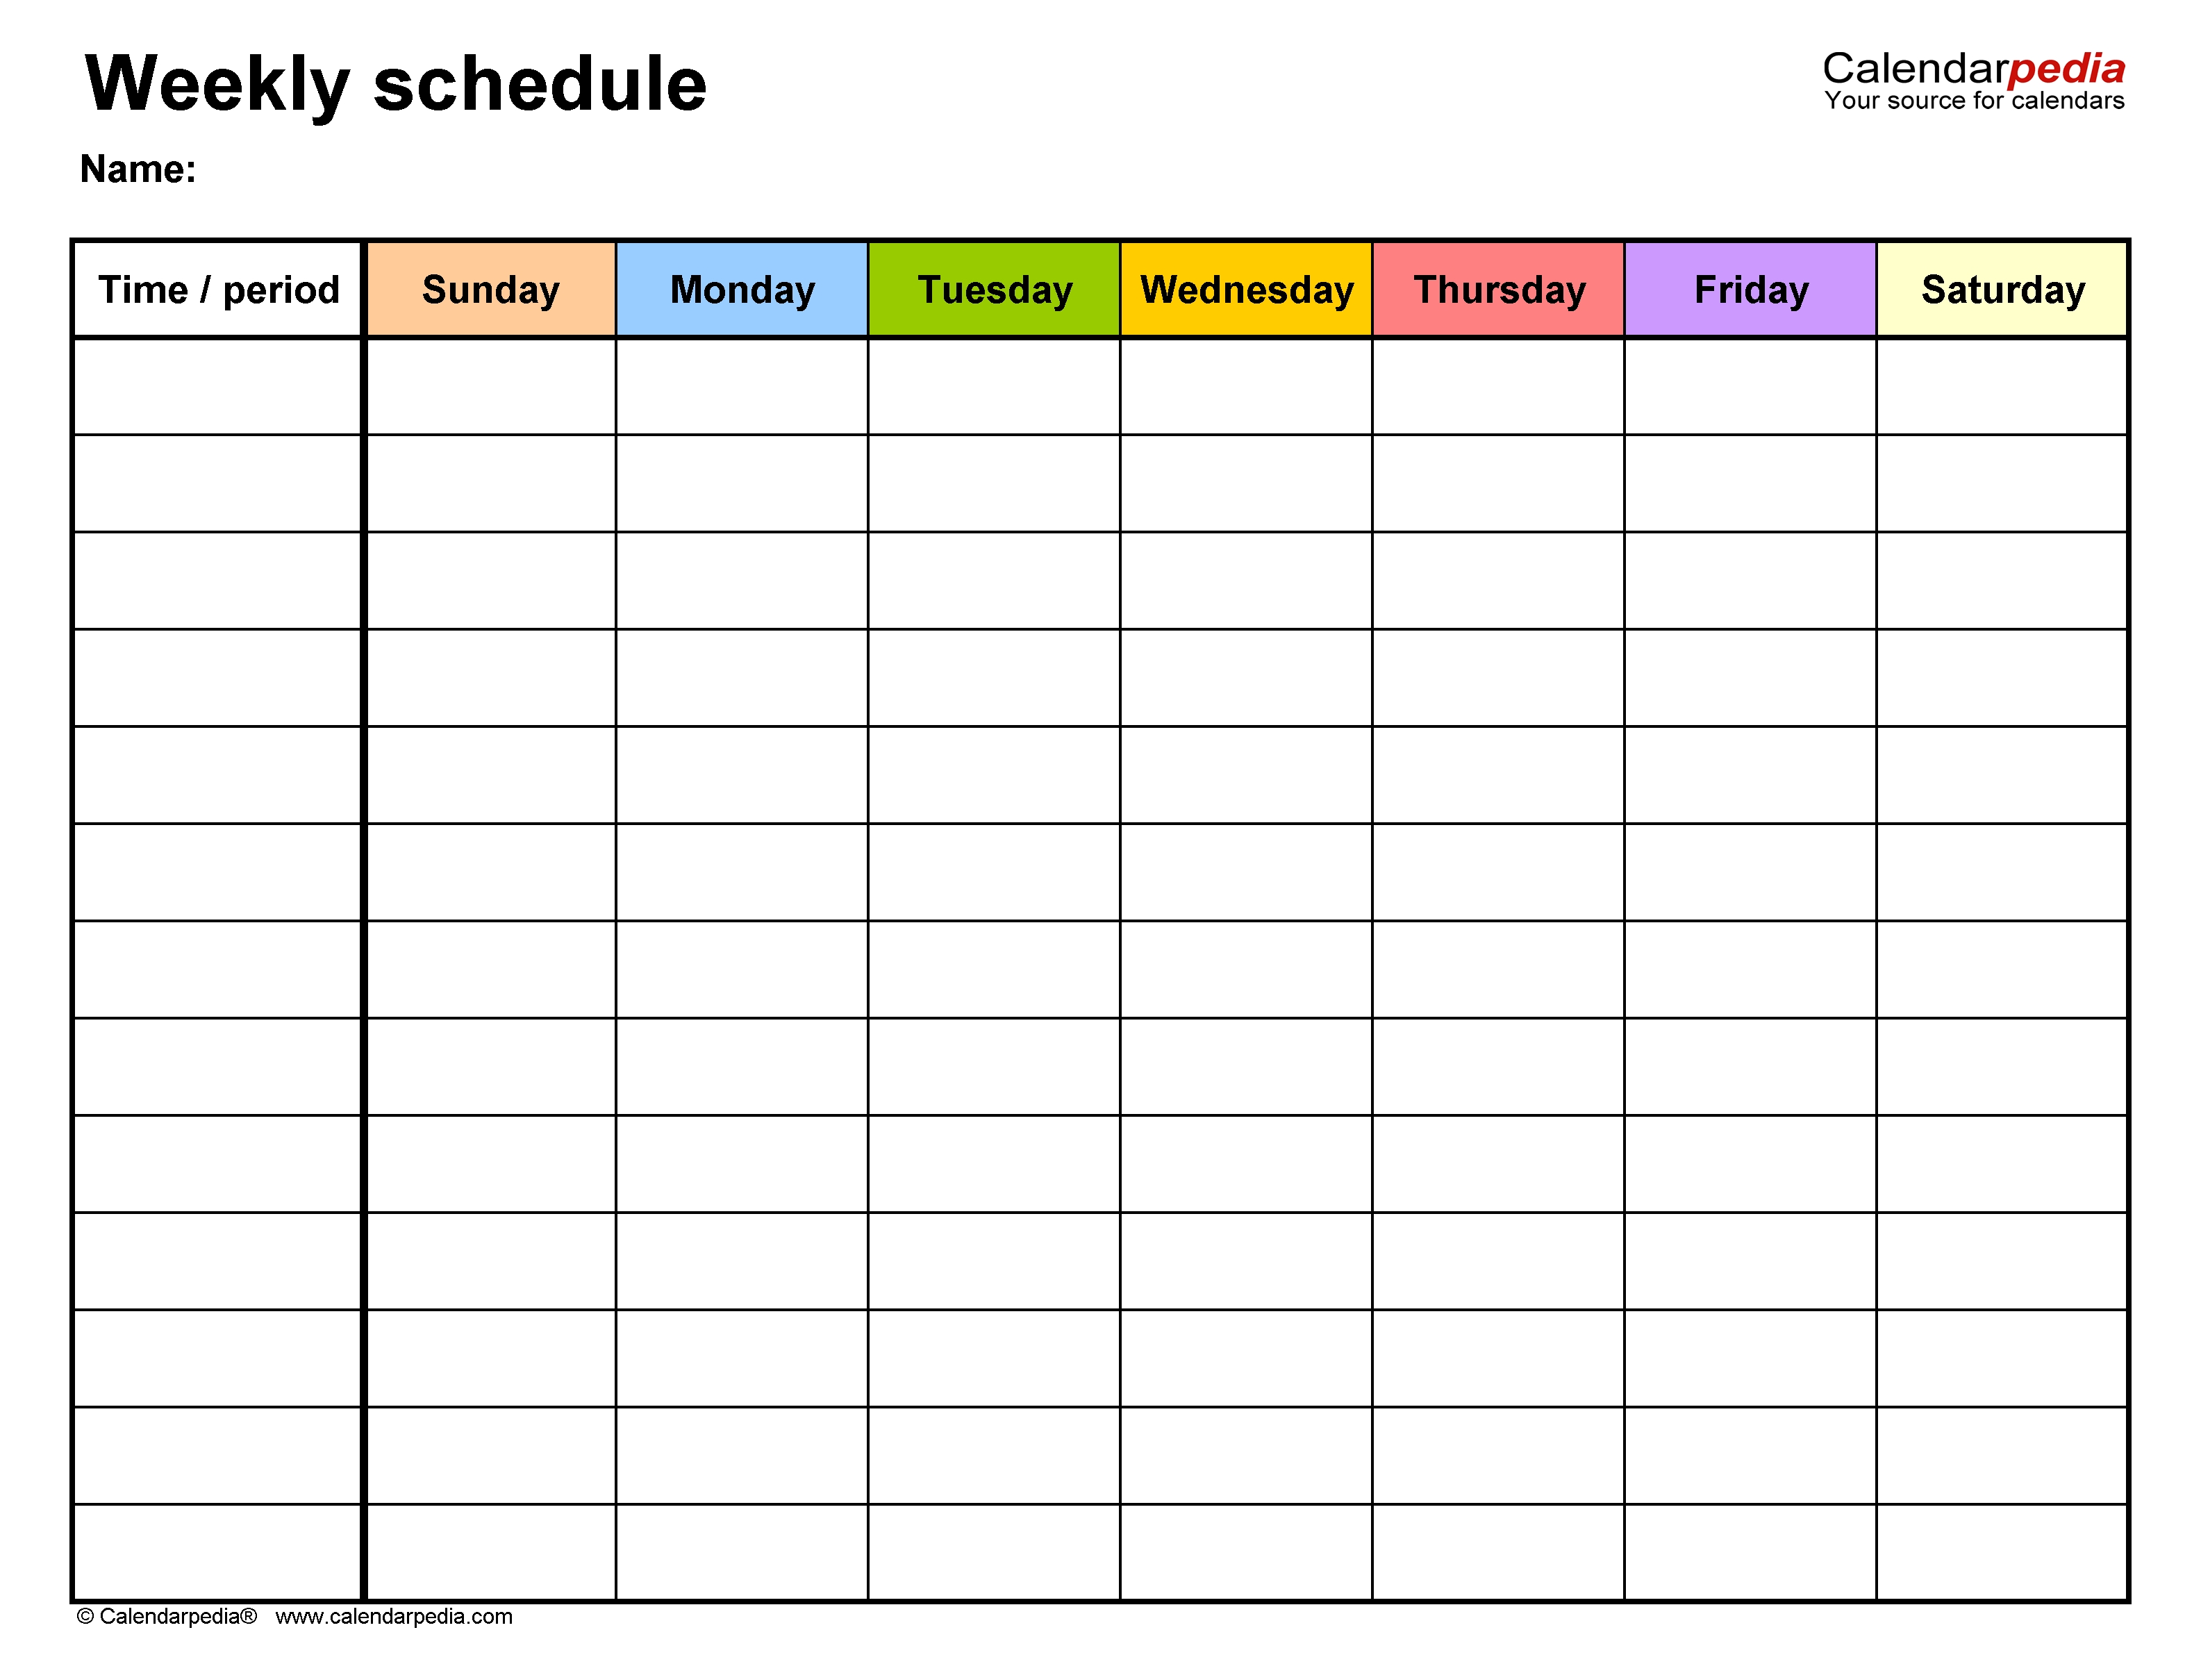 Free Weekly Schedule Templates For Pdf - 18 Templates regarding Weekly Planner With Times Pdf